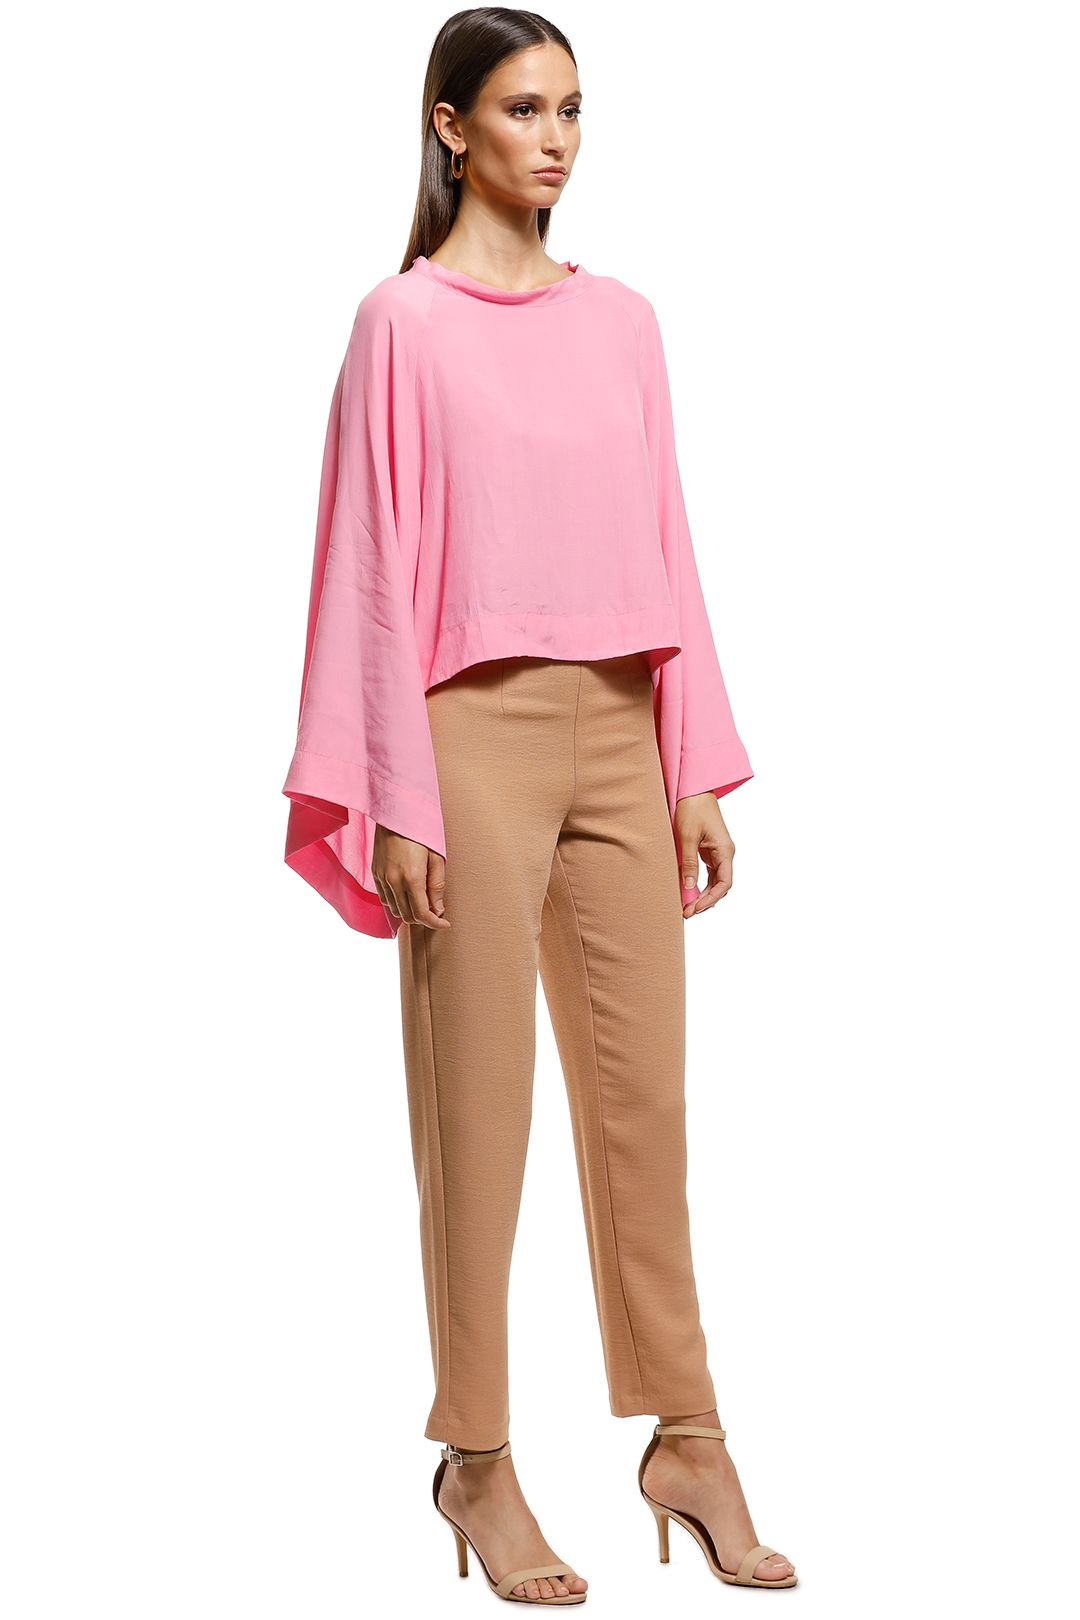 S/W/F - Flick Top - Pink - Front